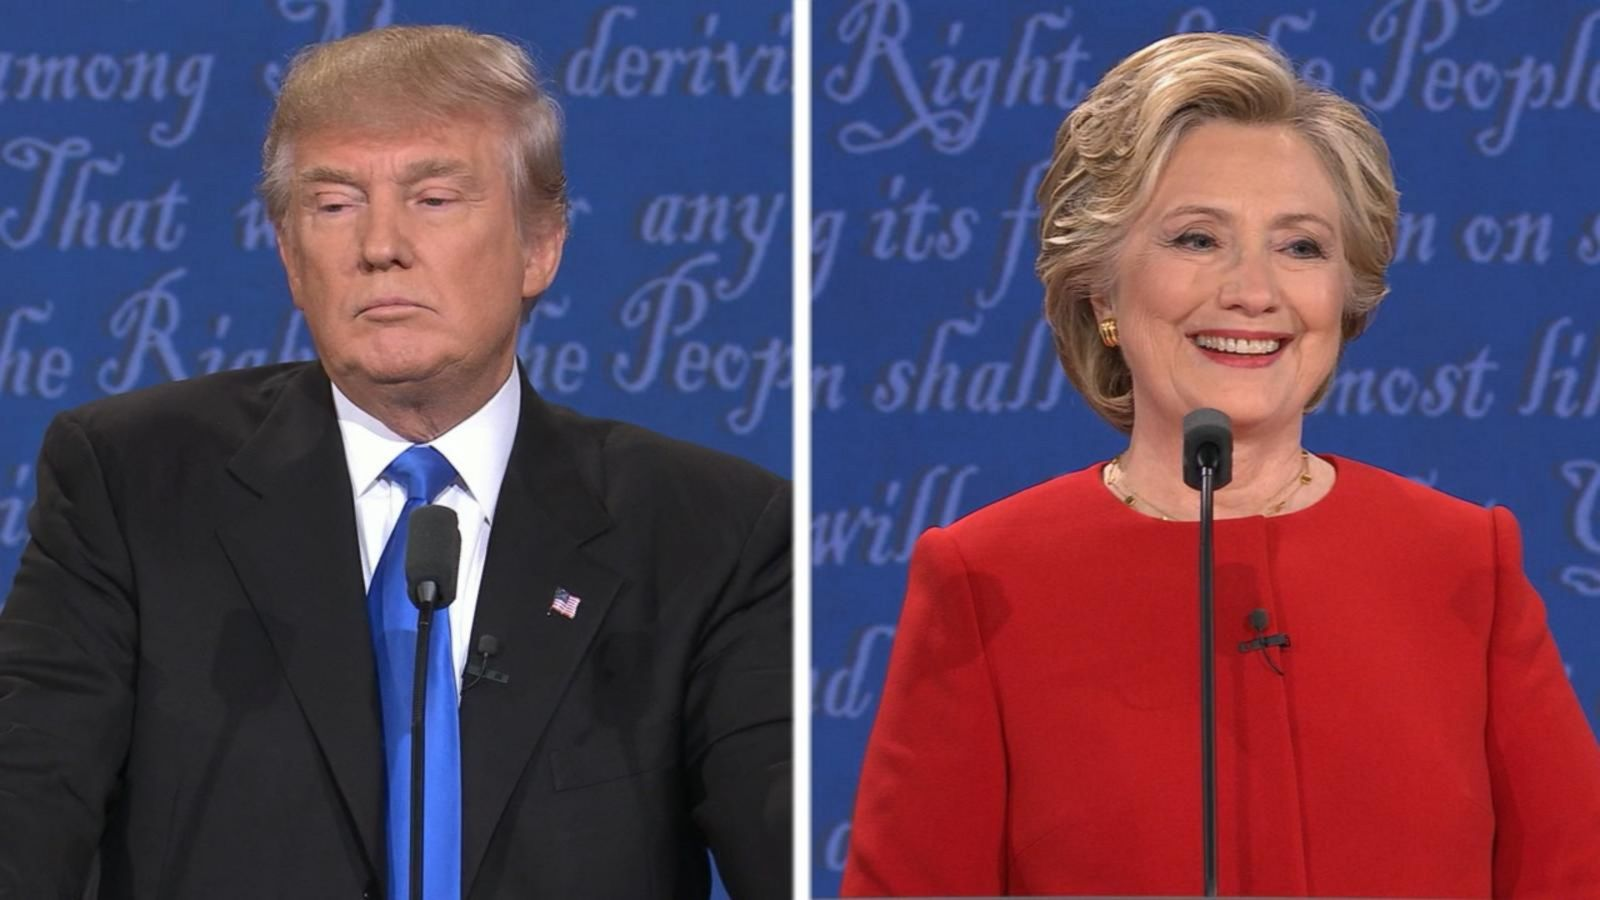 VIDEO: Donald Trump, Hillary Clinton Defend Their Tax Plans